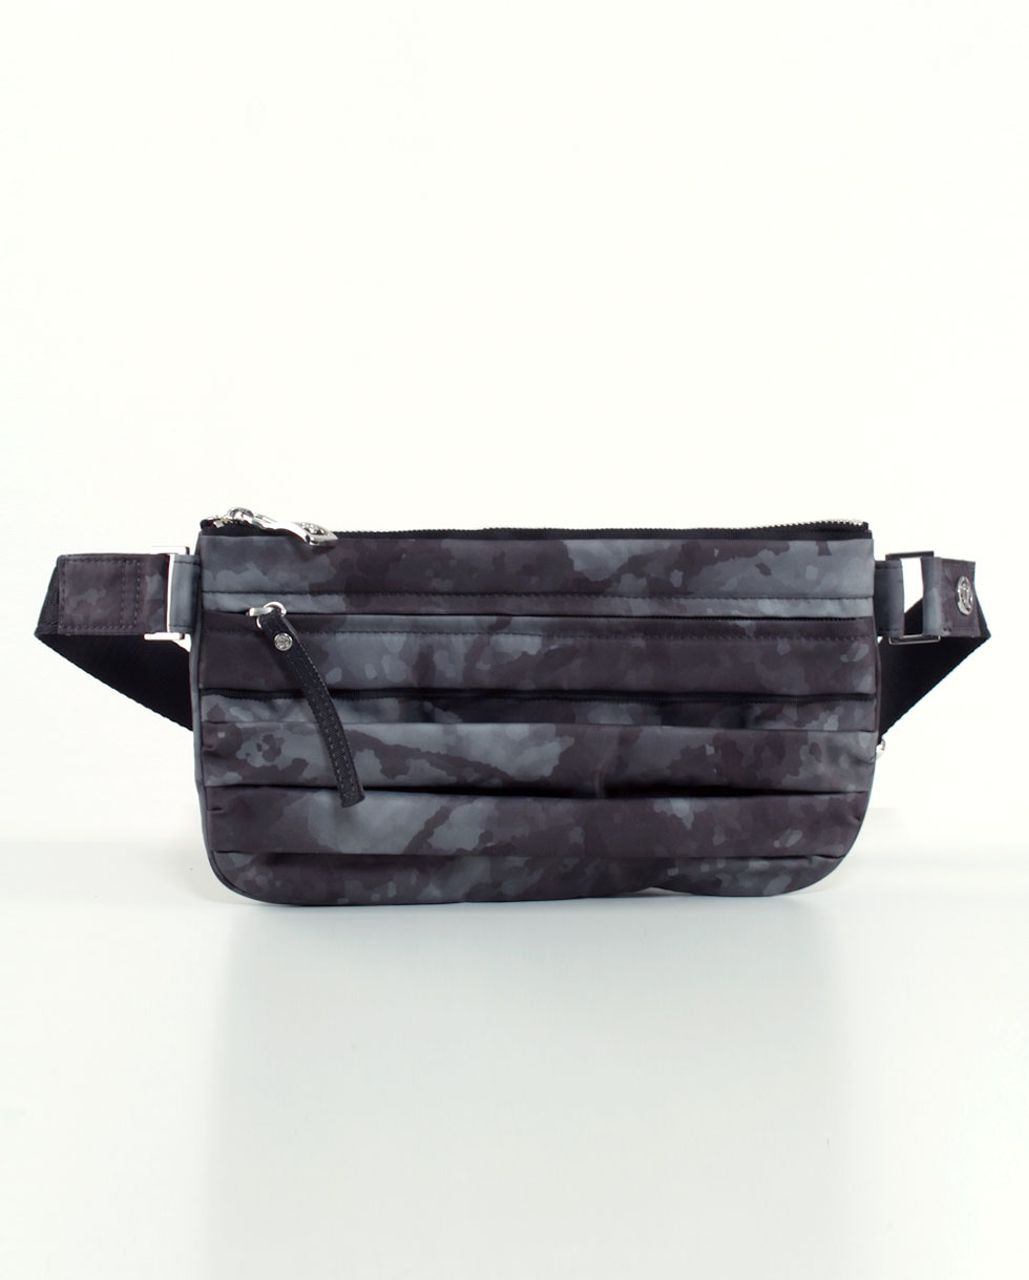 Lululemon Travel Pooch *Special Edition - Deep Coal Creekside Camo